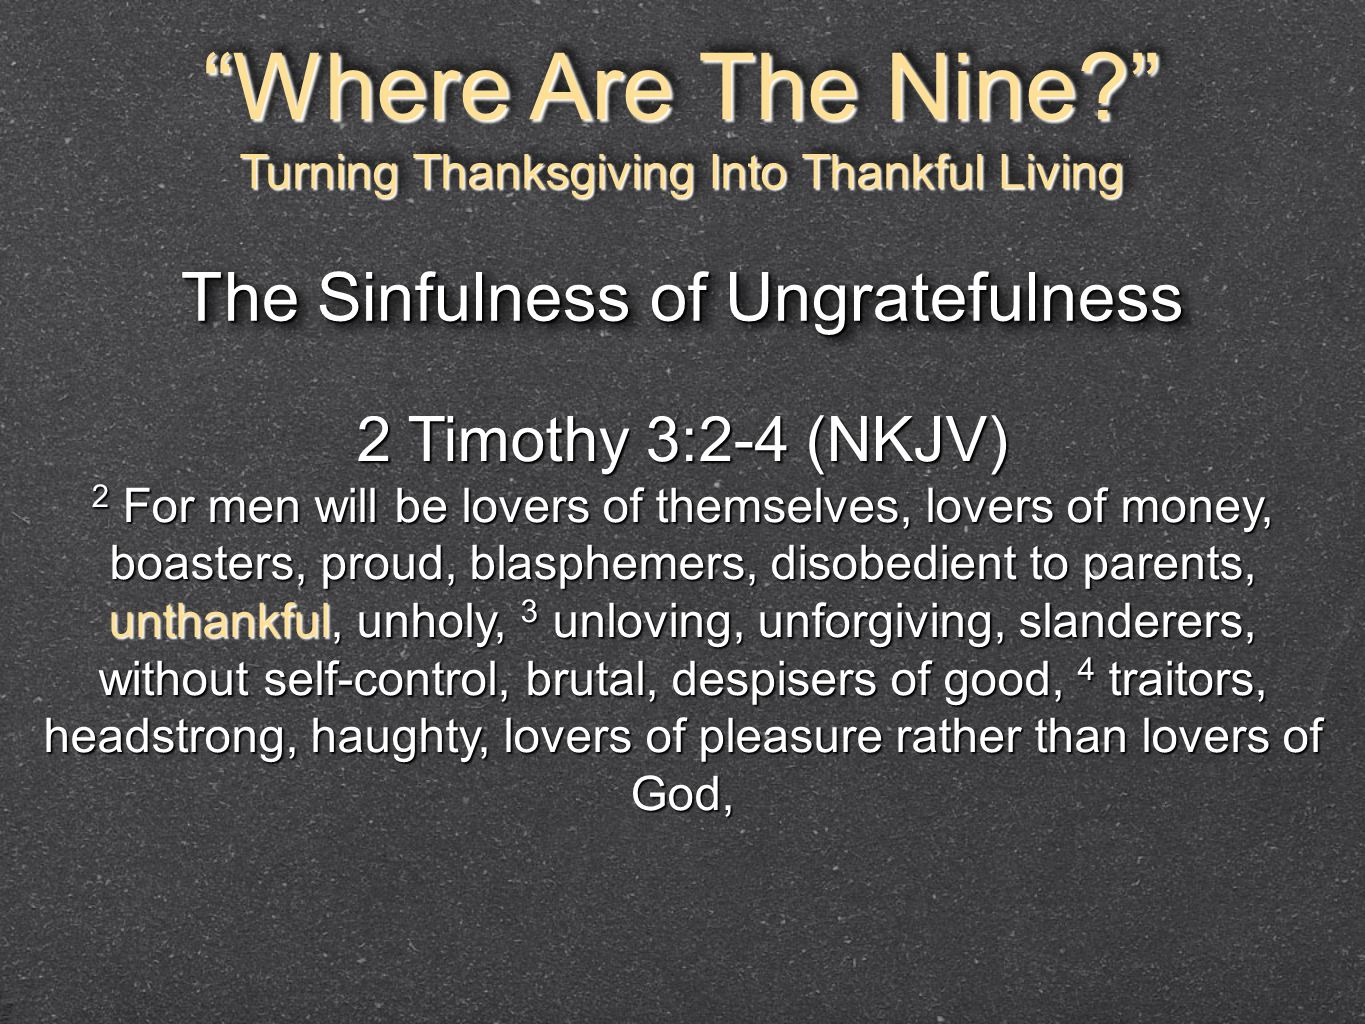 Where Are The Nine The Sinfulness of Ungratefulness